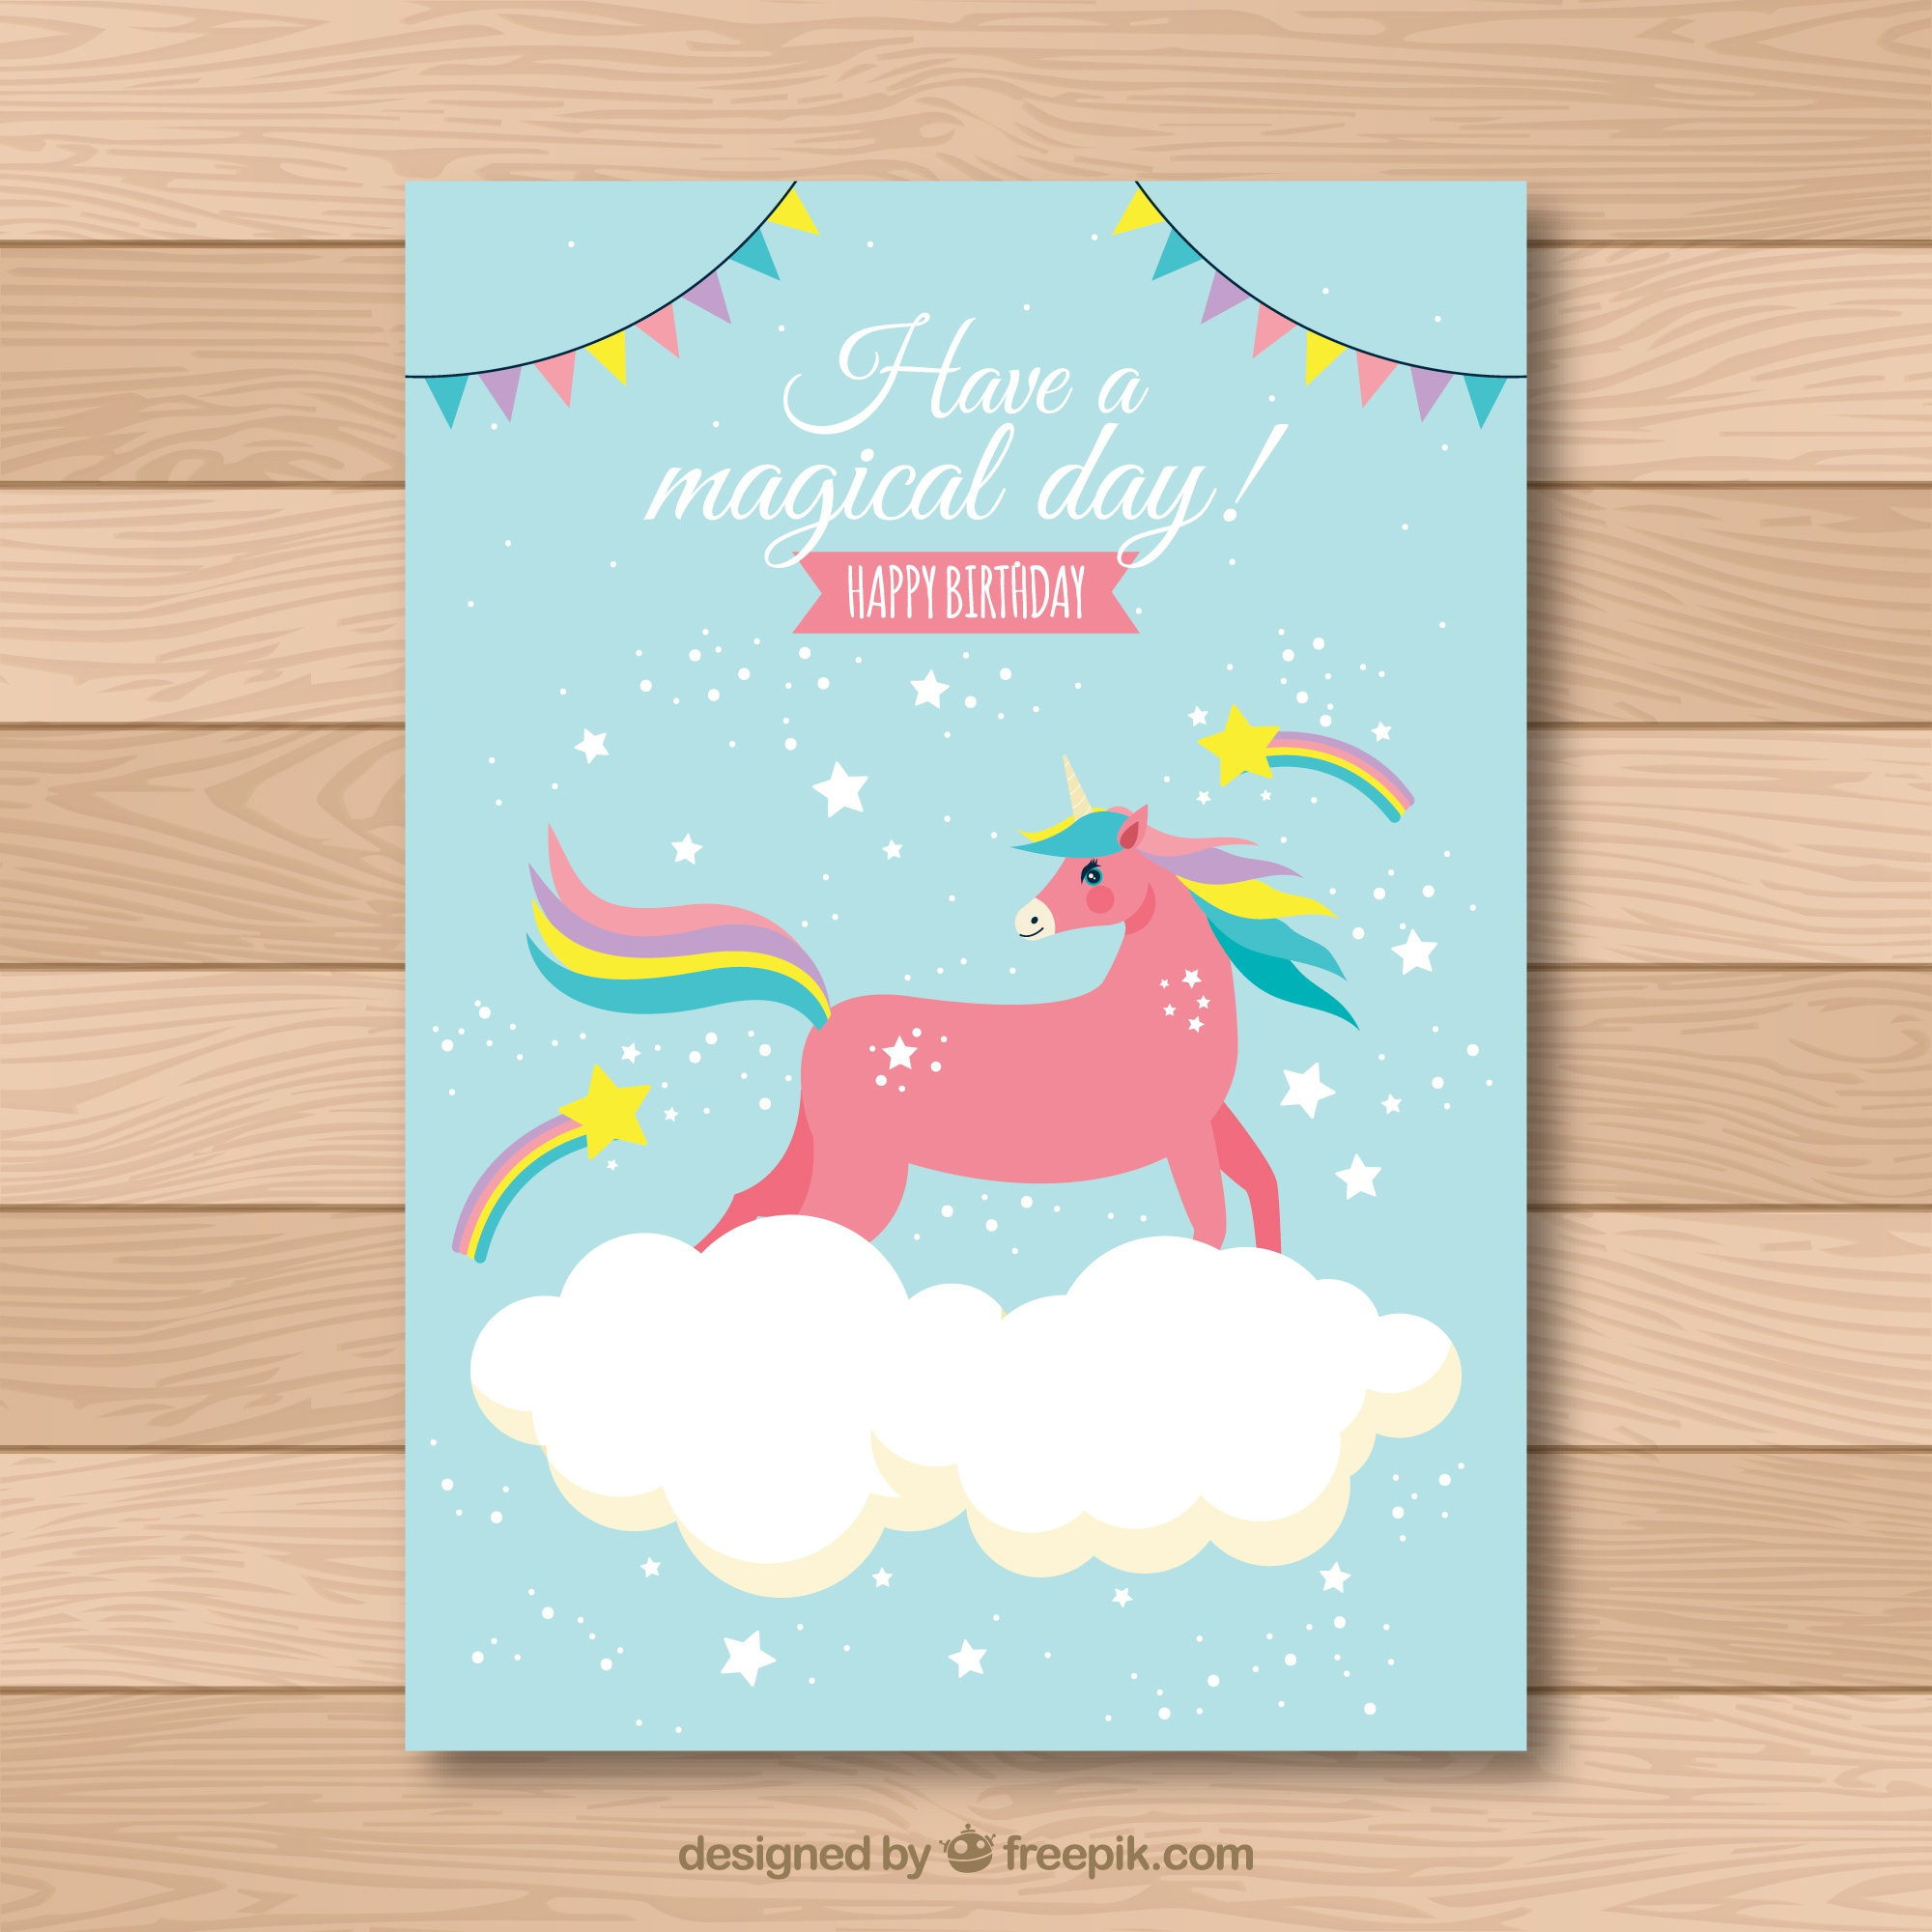 Birthday card with a red unicorn